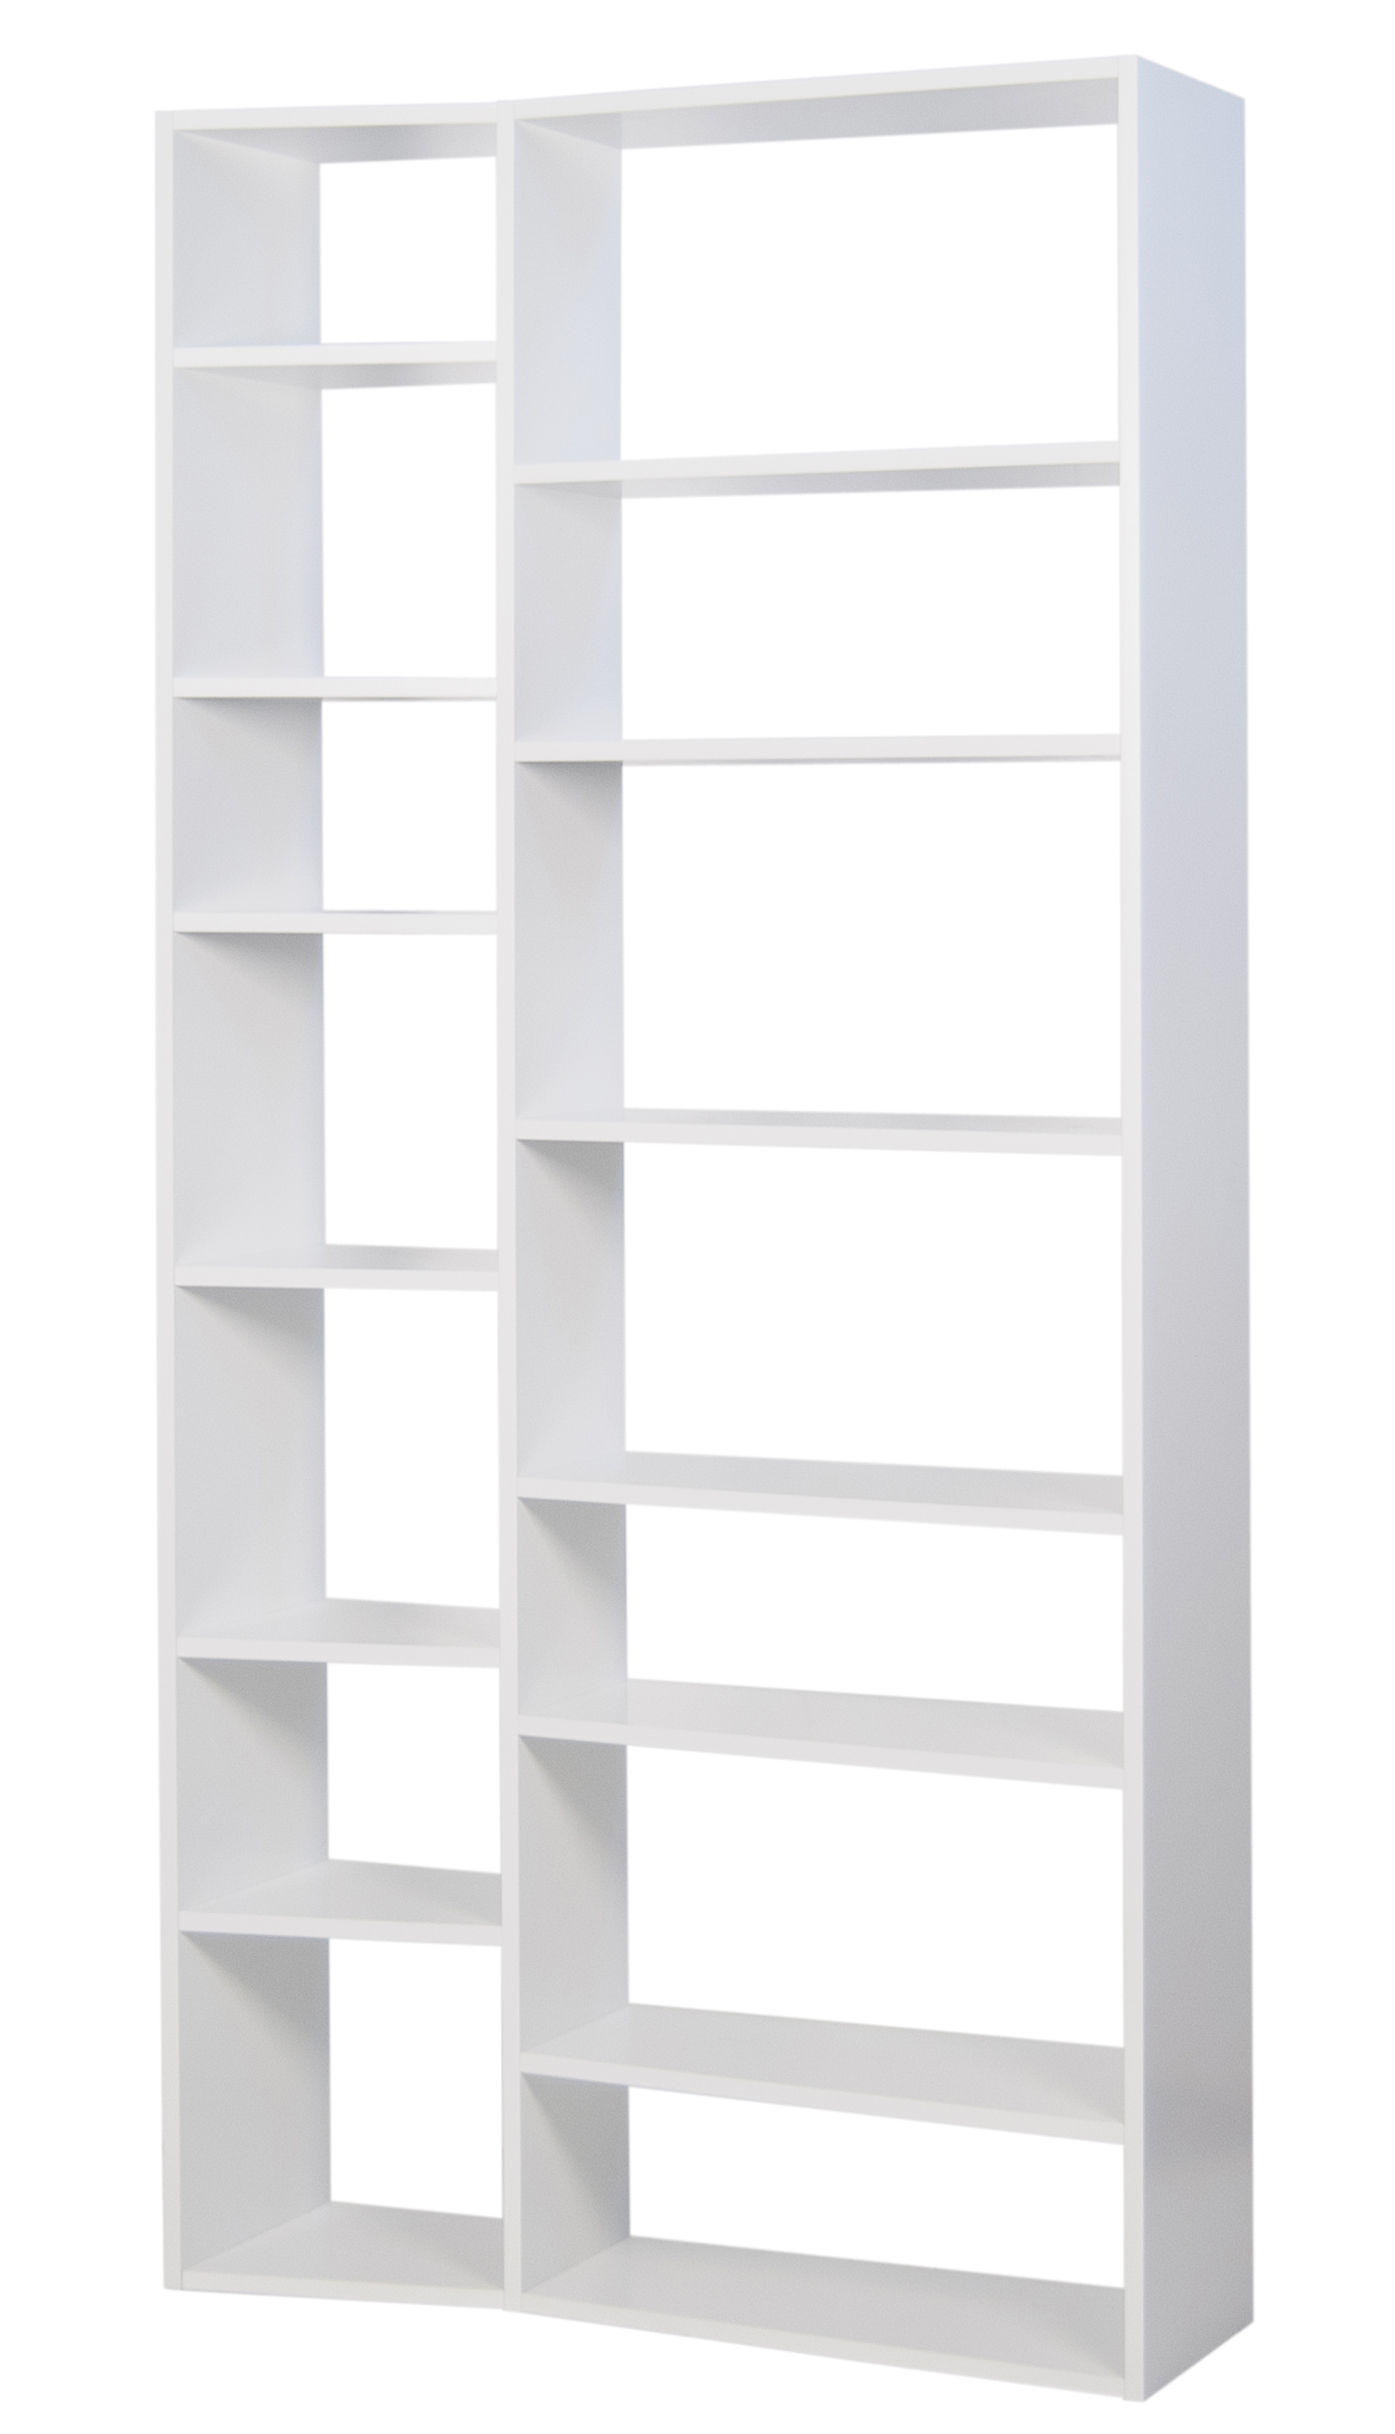 bookcase in wall style uncategorized files marvelous doors unbelievable and a with extraordinary bookcases built inspiration pic to build for shelves how units